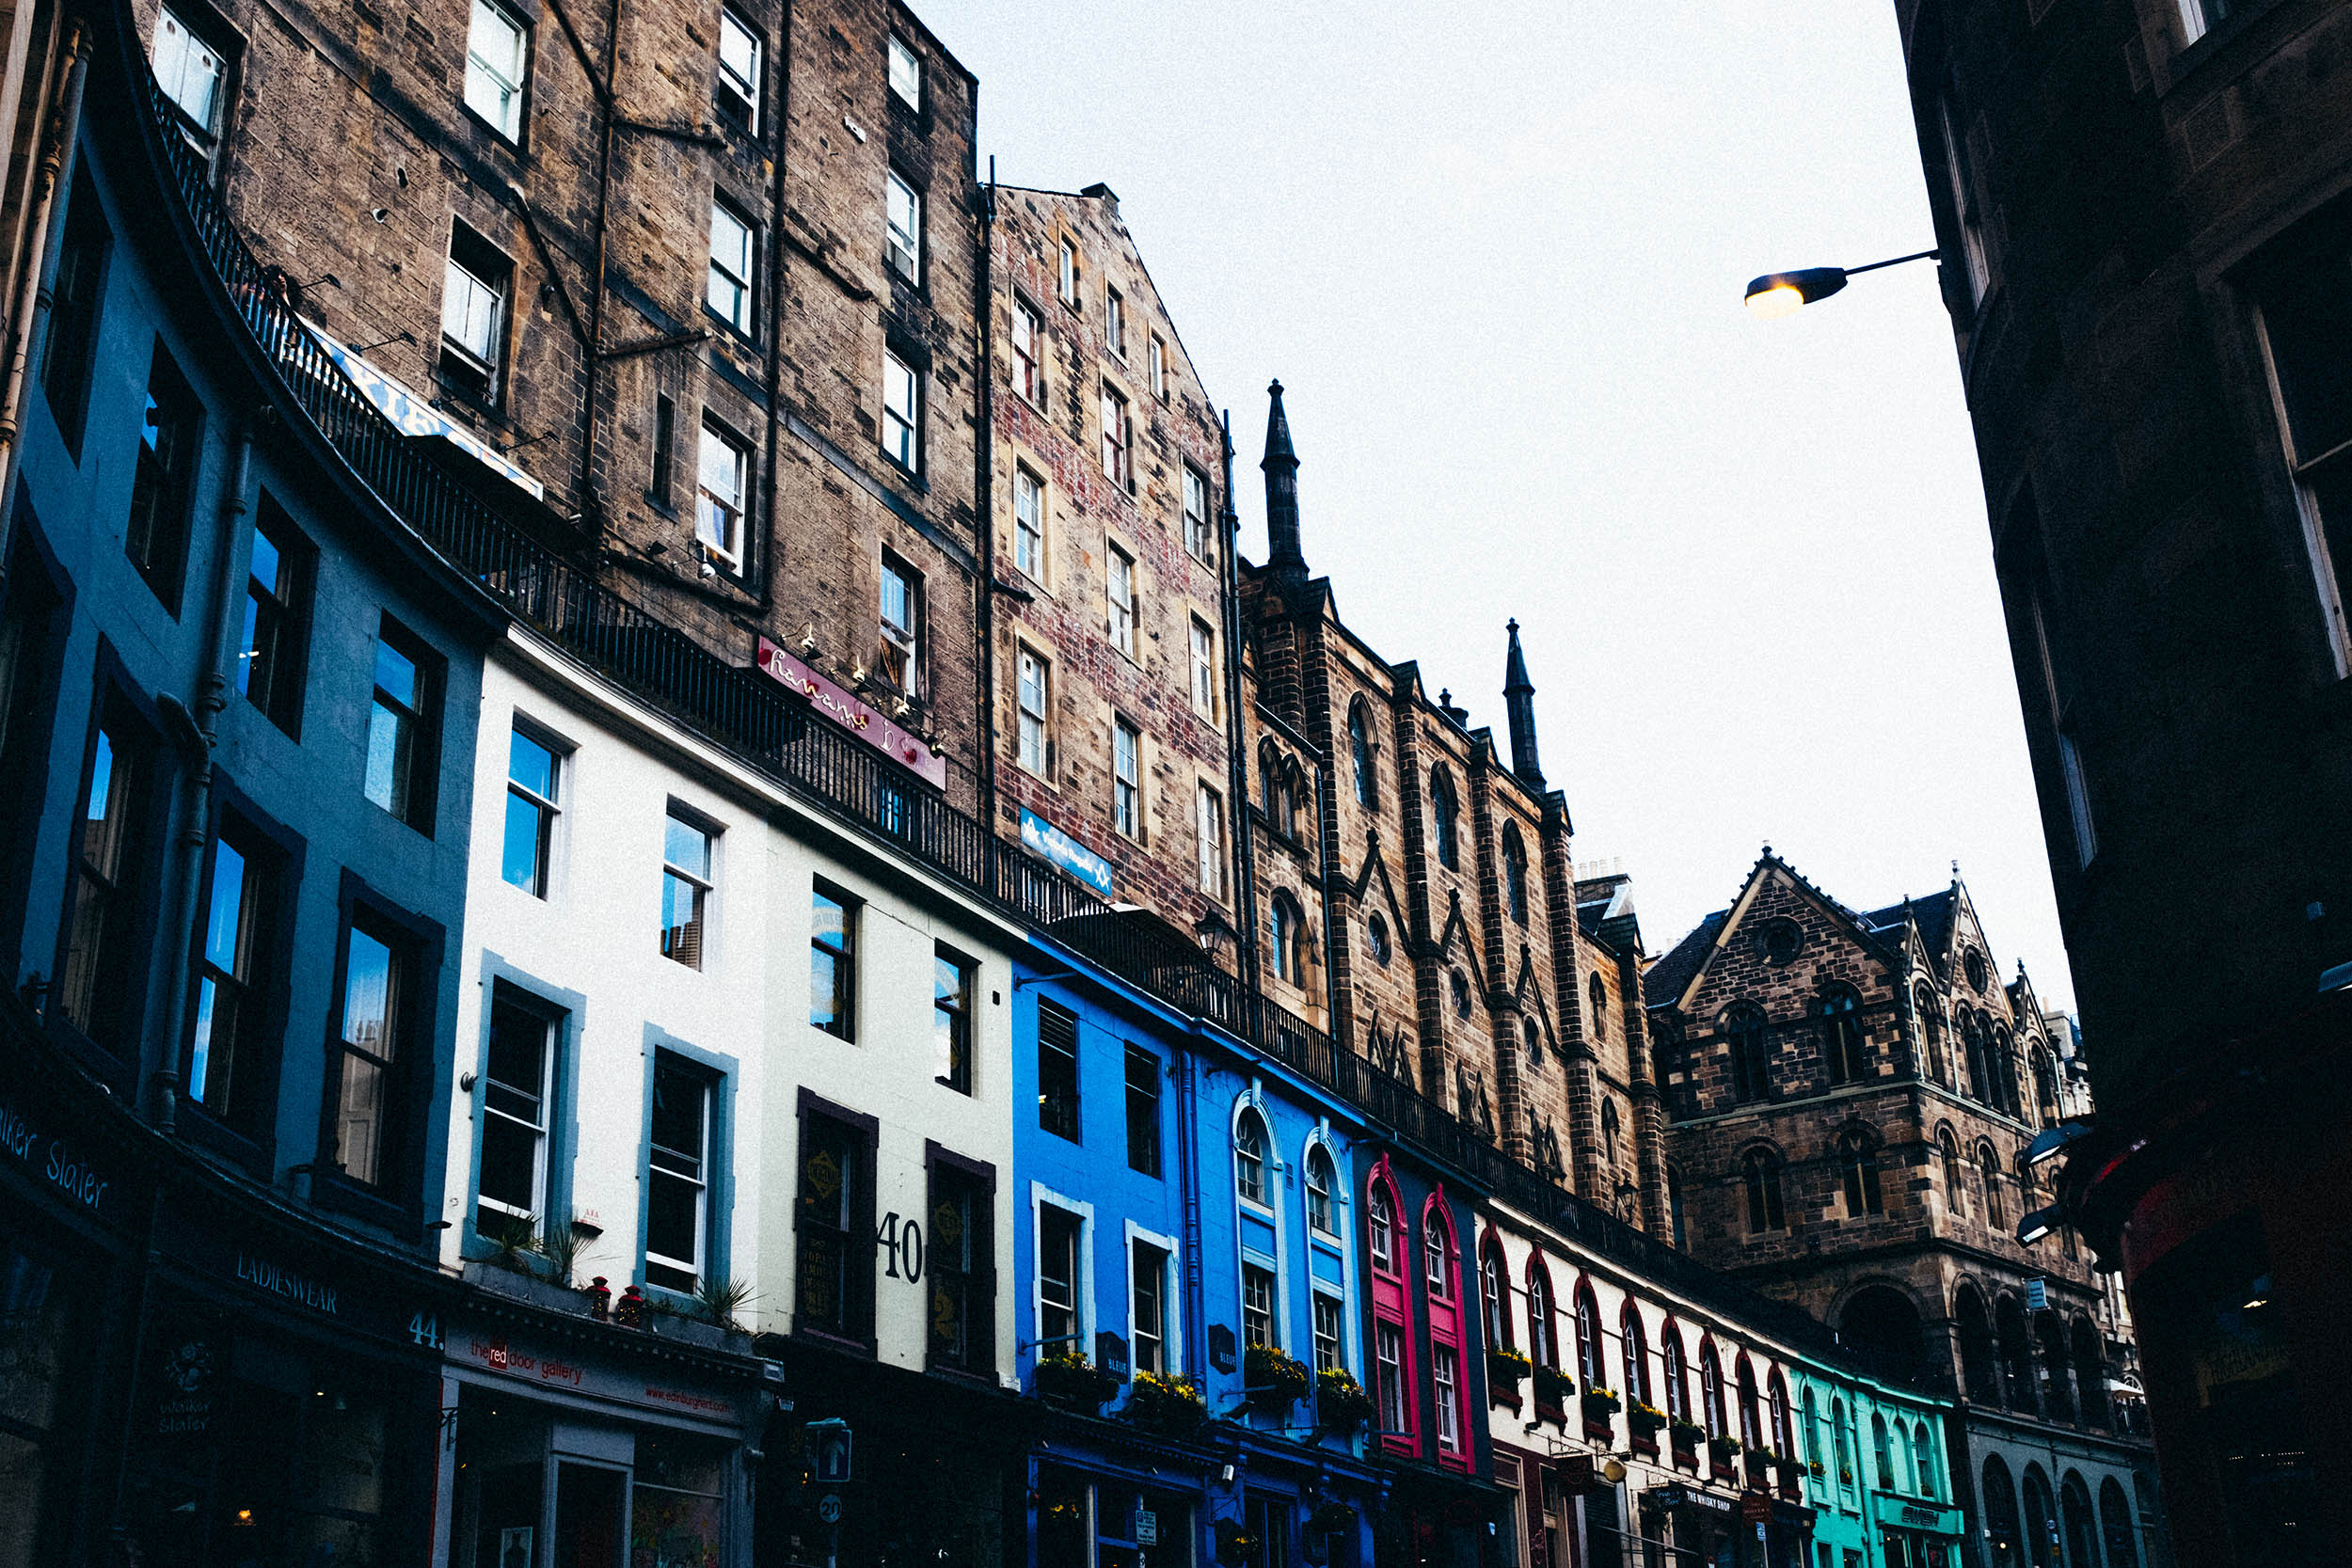 Colors of Edinburgh, Victoria Street